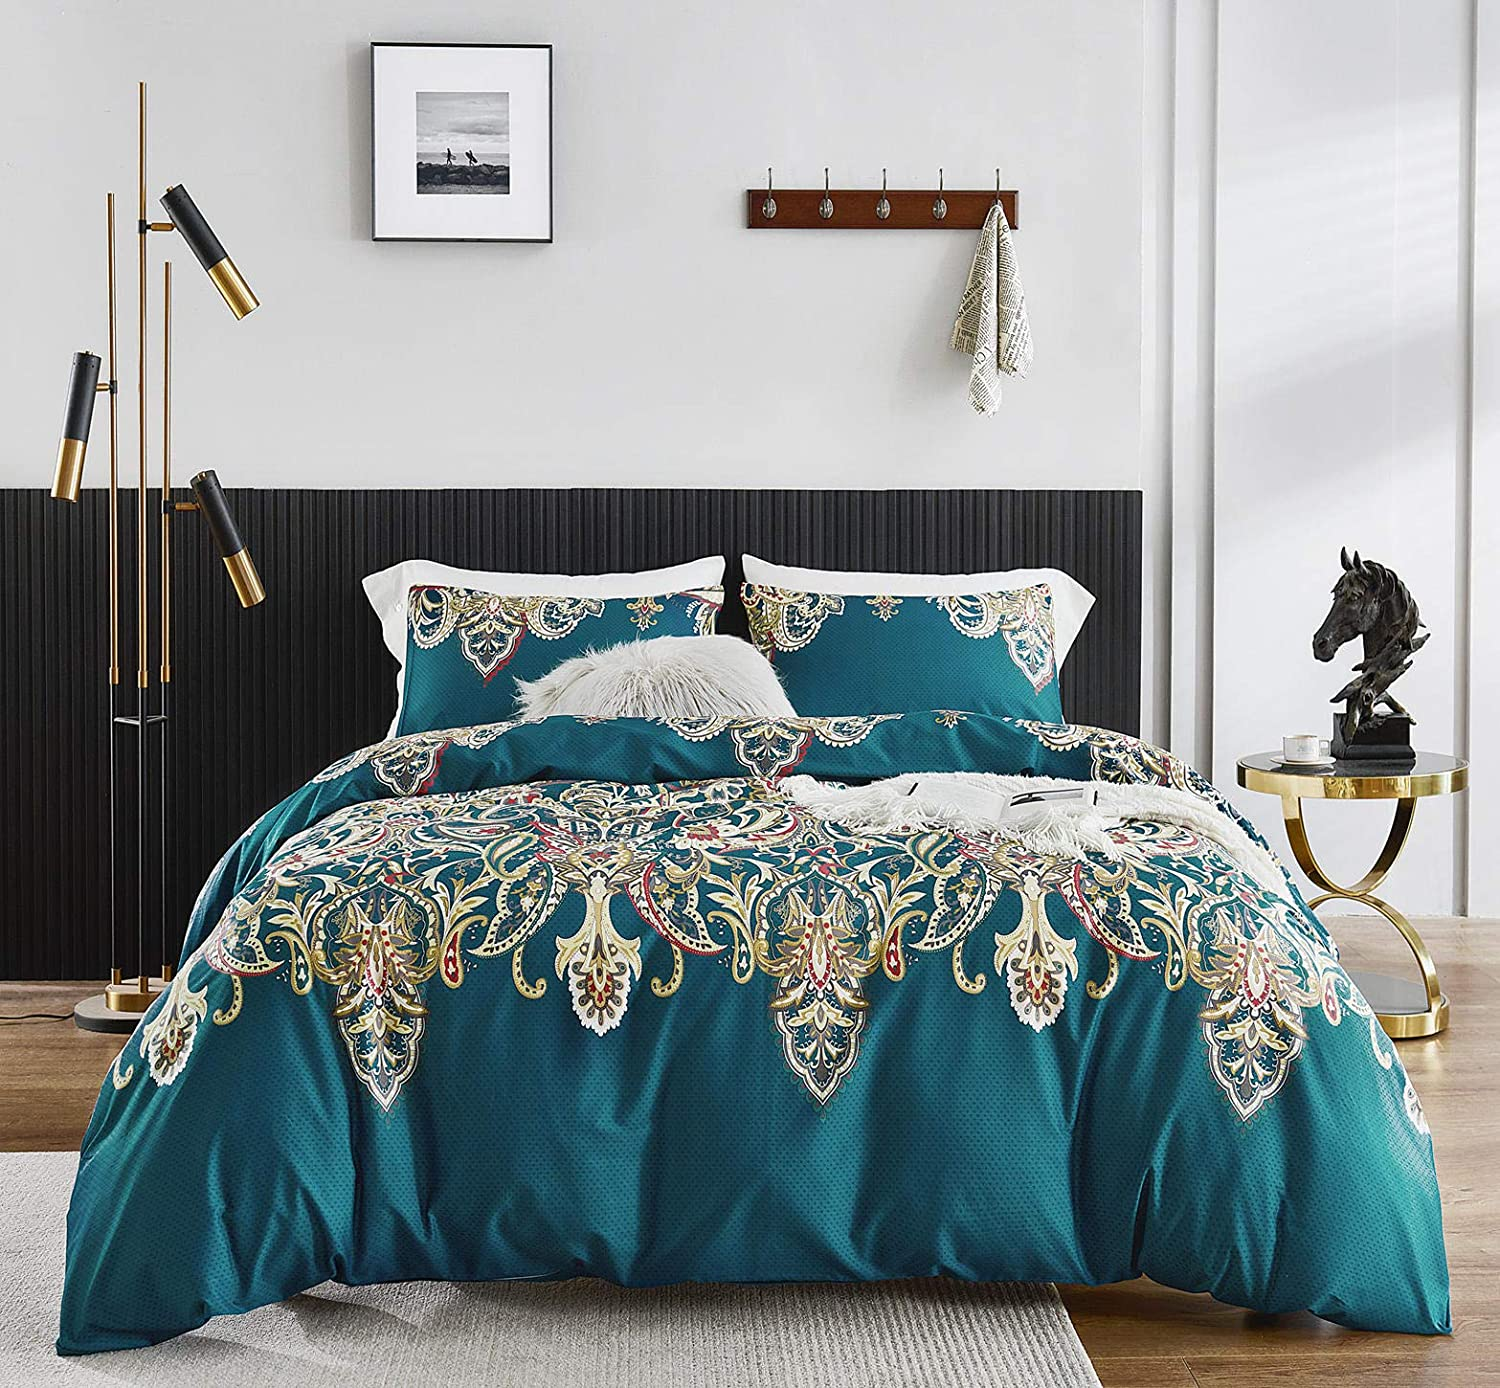 Amazon Com Susybao 3 Piece Duvet Cover Set 100 Egyptian Cotton Queen Size Teal Paisley Bedding Set 1 Bohemian Floral Print Duvet Cover With Zipper Ties 2 Pillowcases Luxury Quality Ultra Soft Breathable